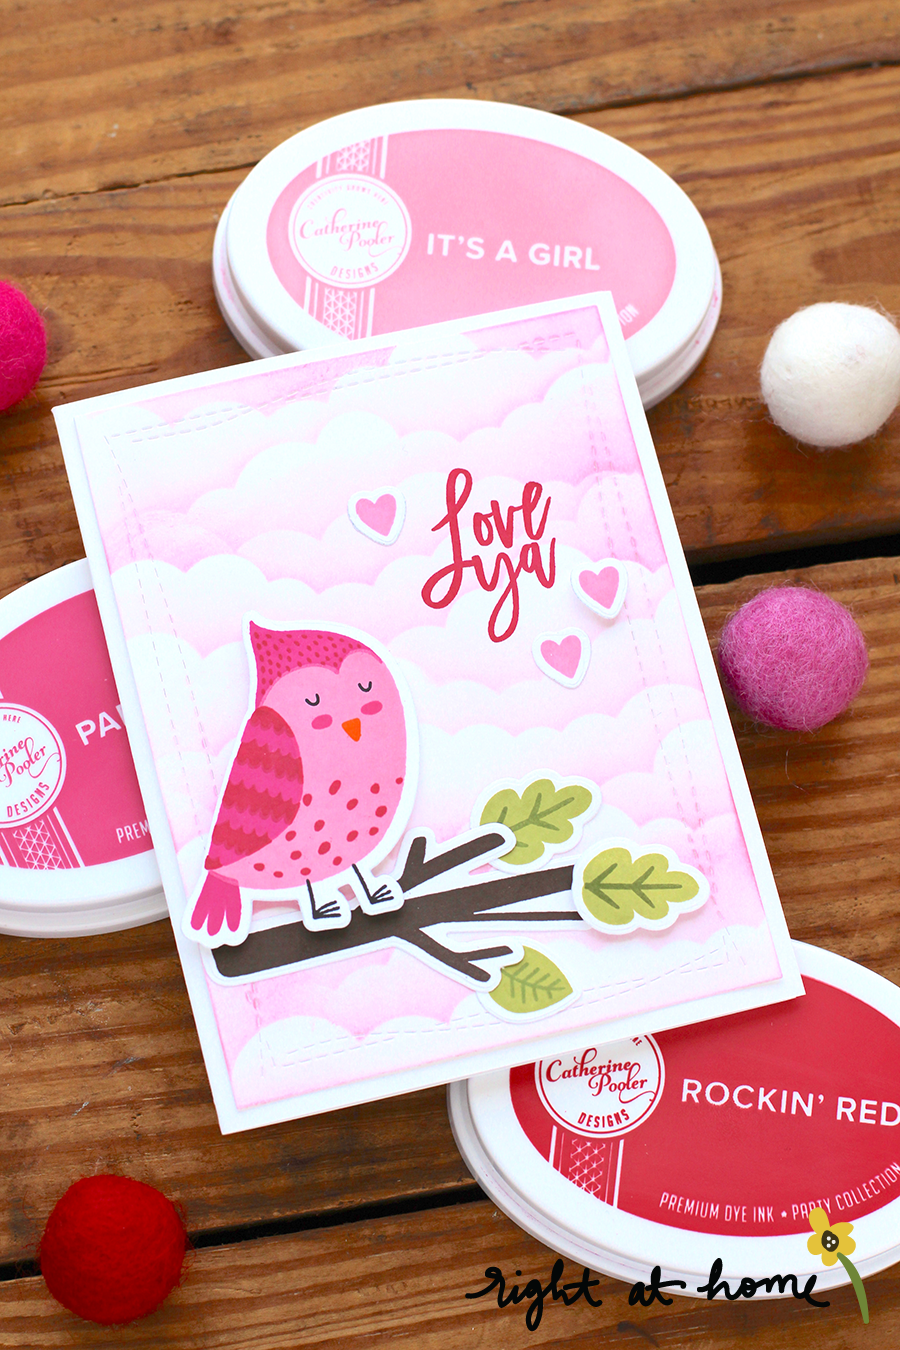 Love Ya Cozy Cardinal Valentine's Day Card Using Catherine Pooler Designs Dye Inks // rightathomeshop.com/blog